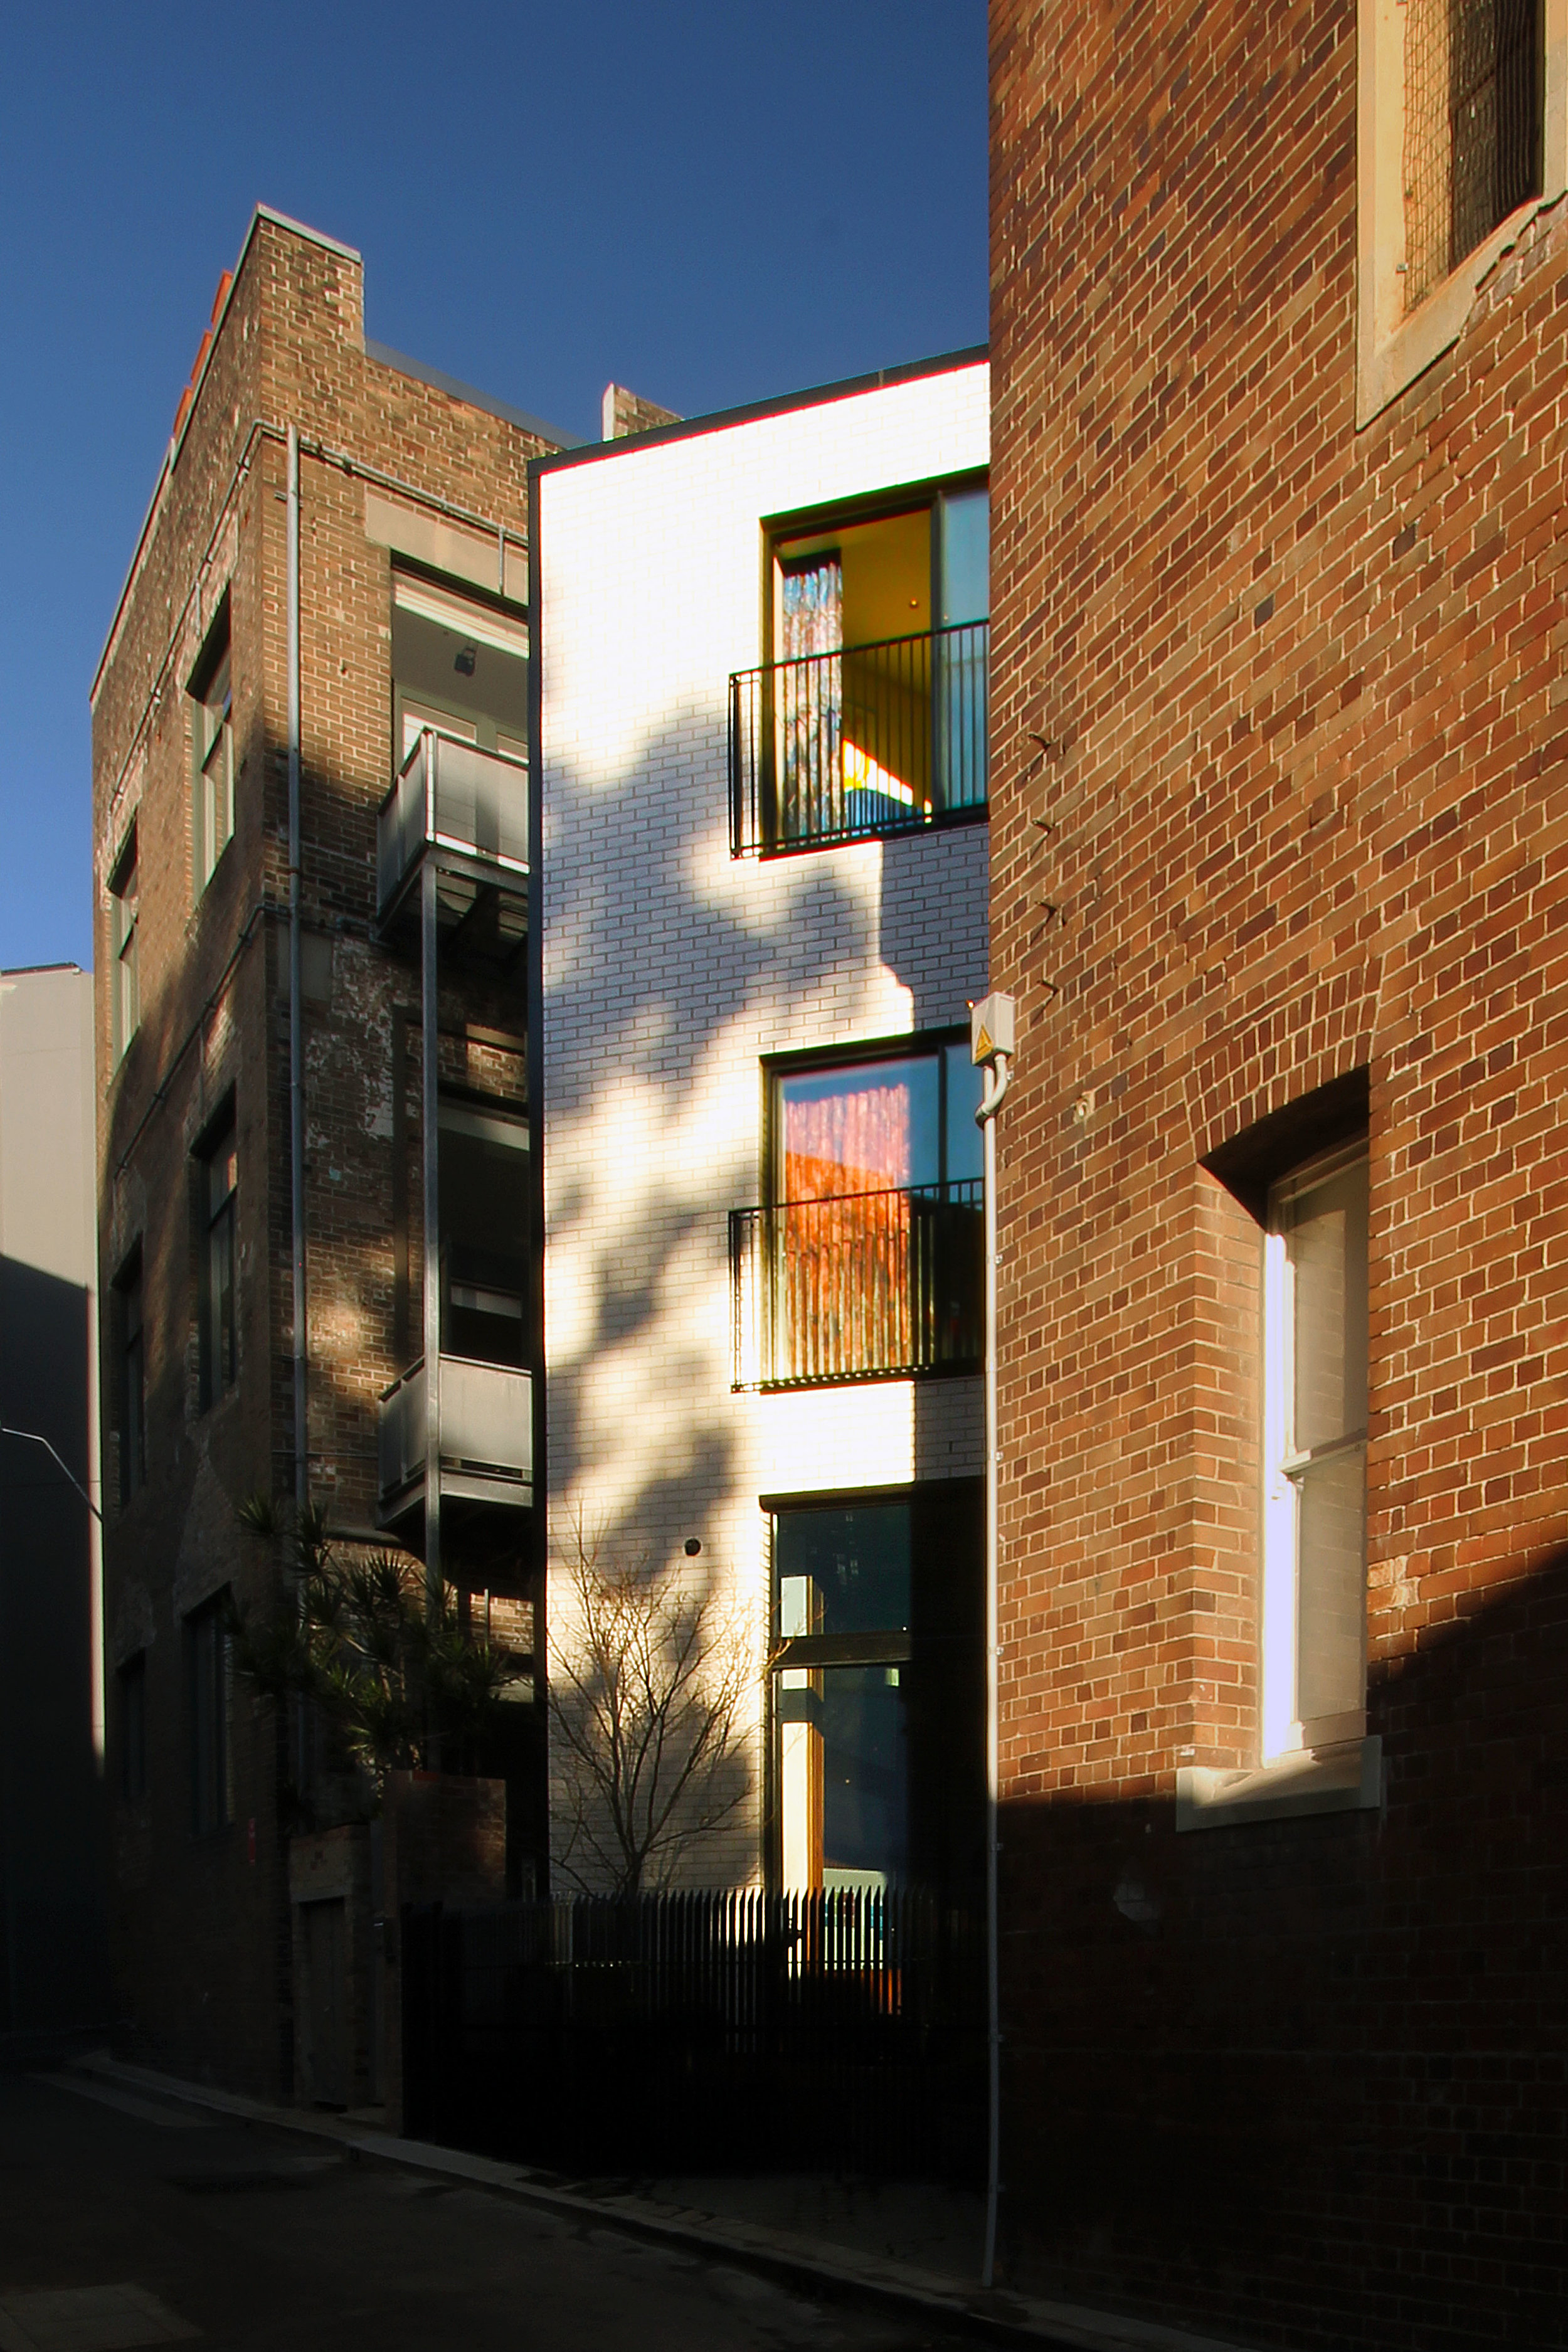 TYA Photography | Little Albion Guest House | Little Albion Street | Winter | NW | Sunset 01B | A9252.jpg